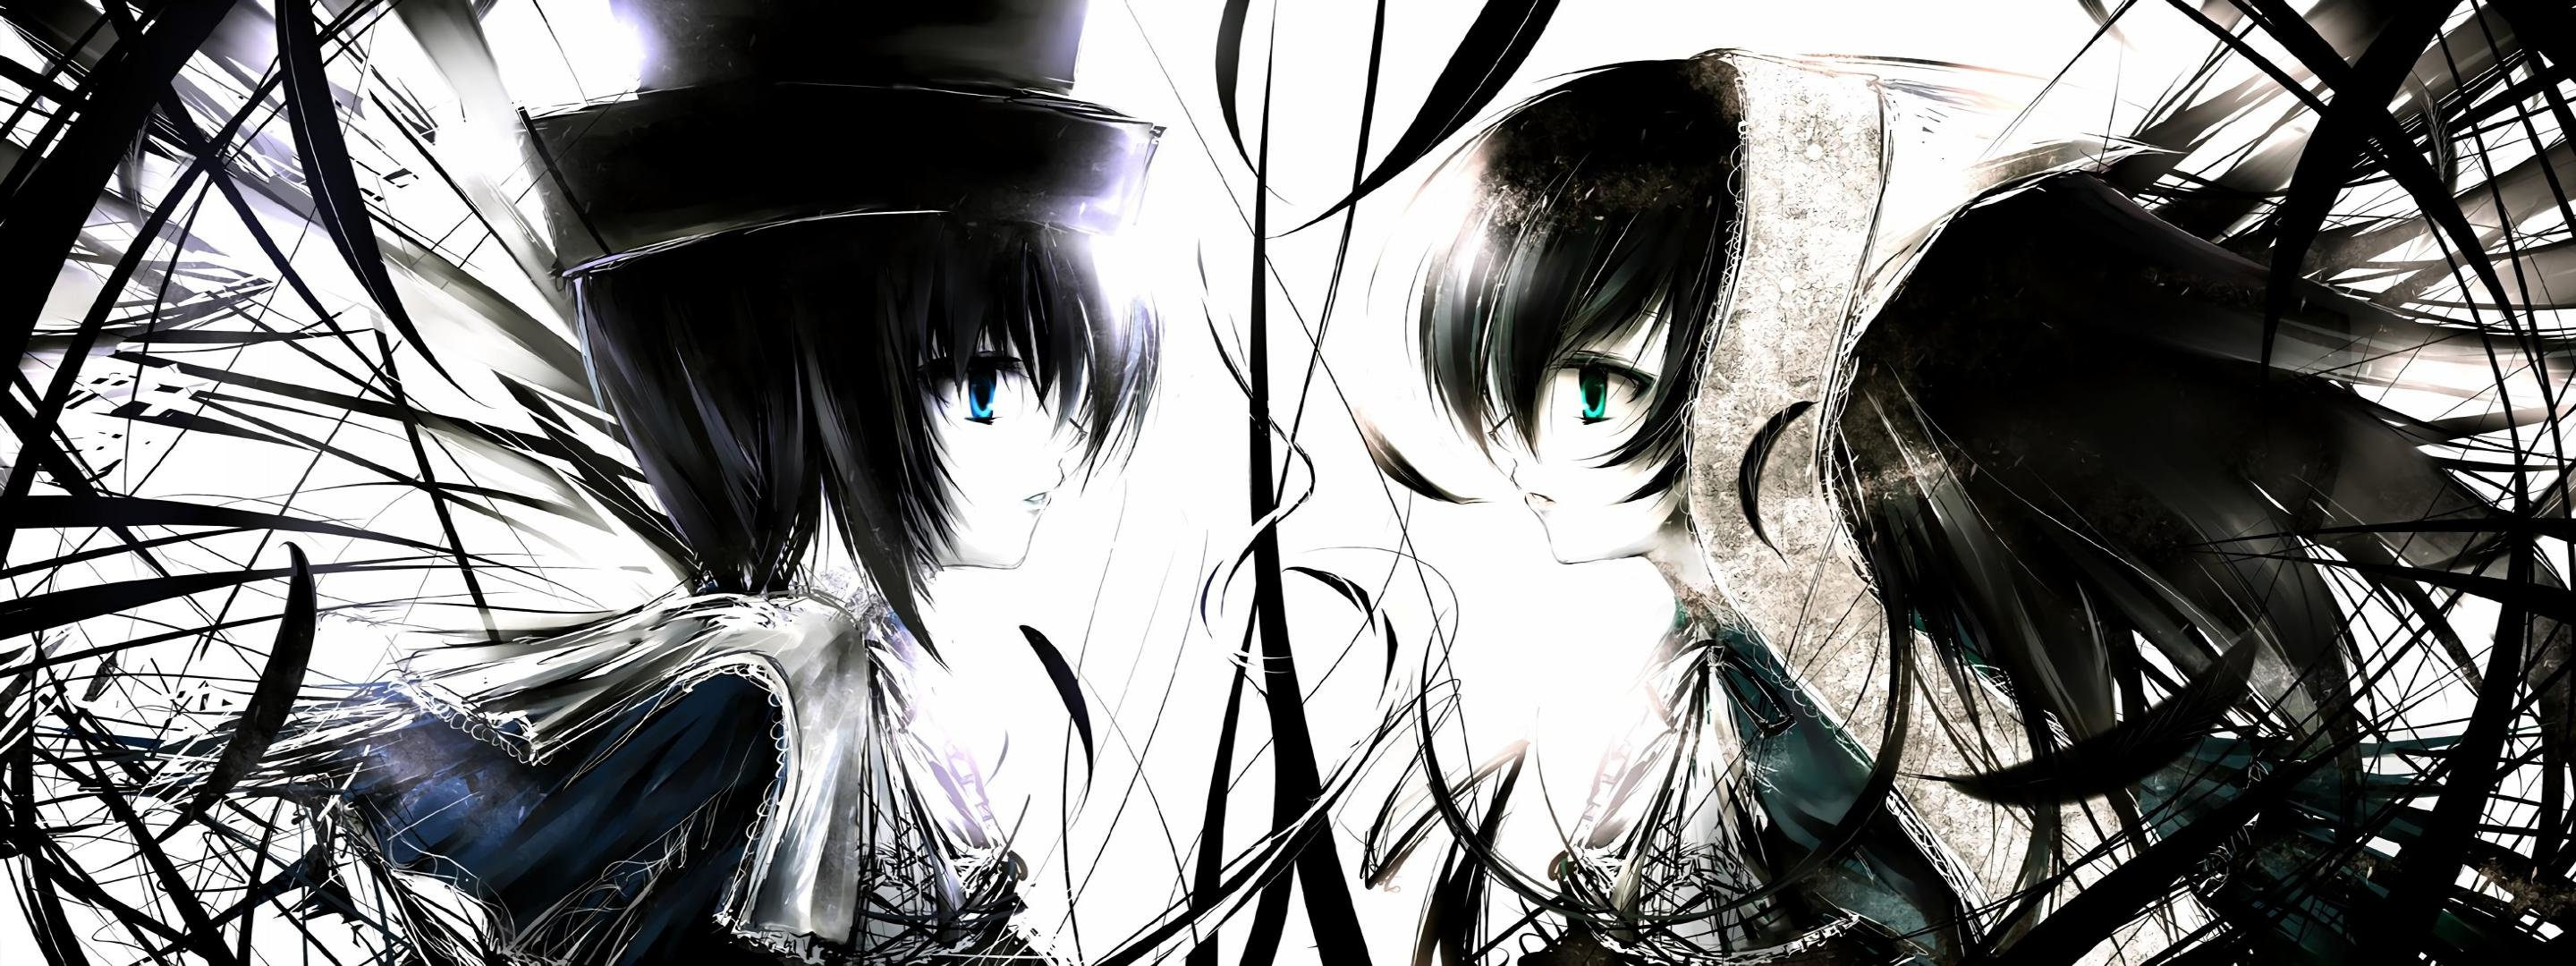 Download dual screen 2880x1080 Suiseiseki (Rozen Maiden) PC background ID:357529 for free